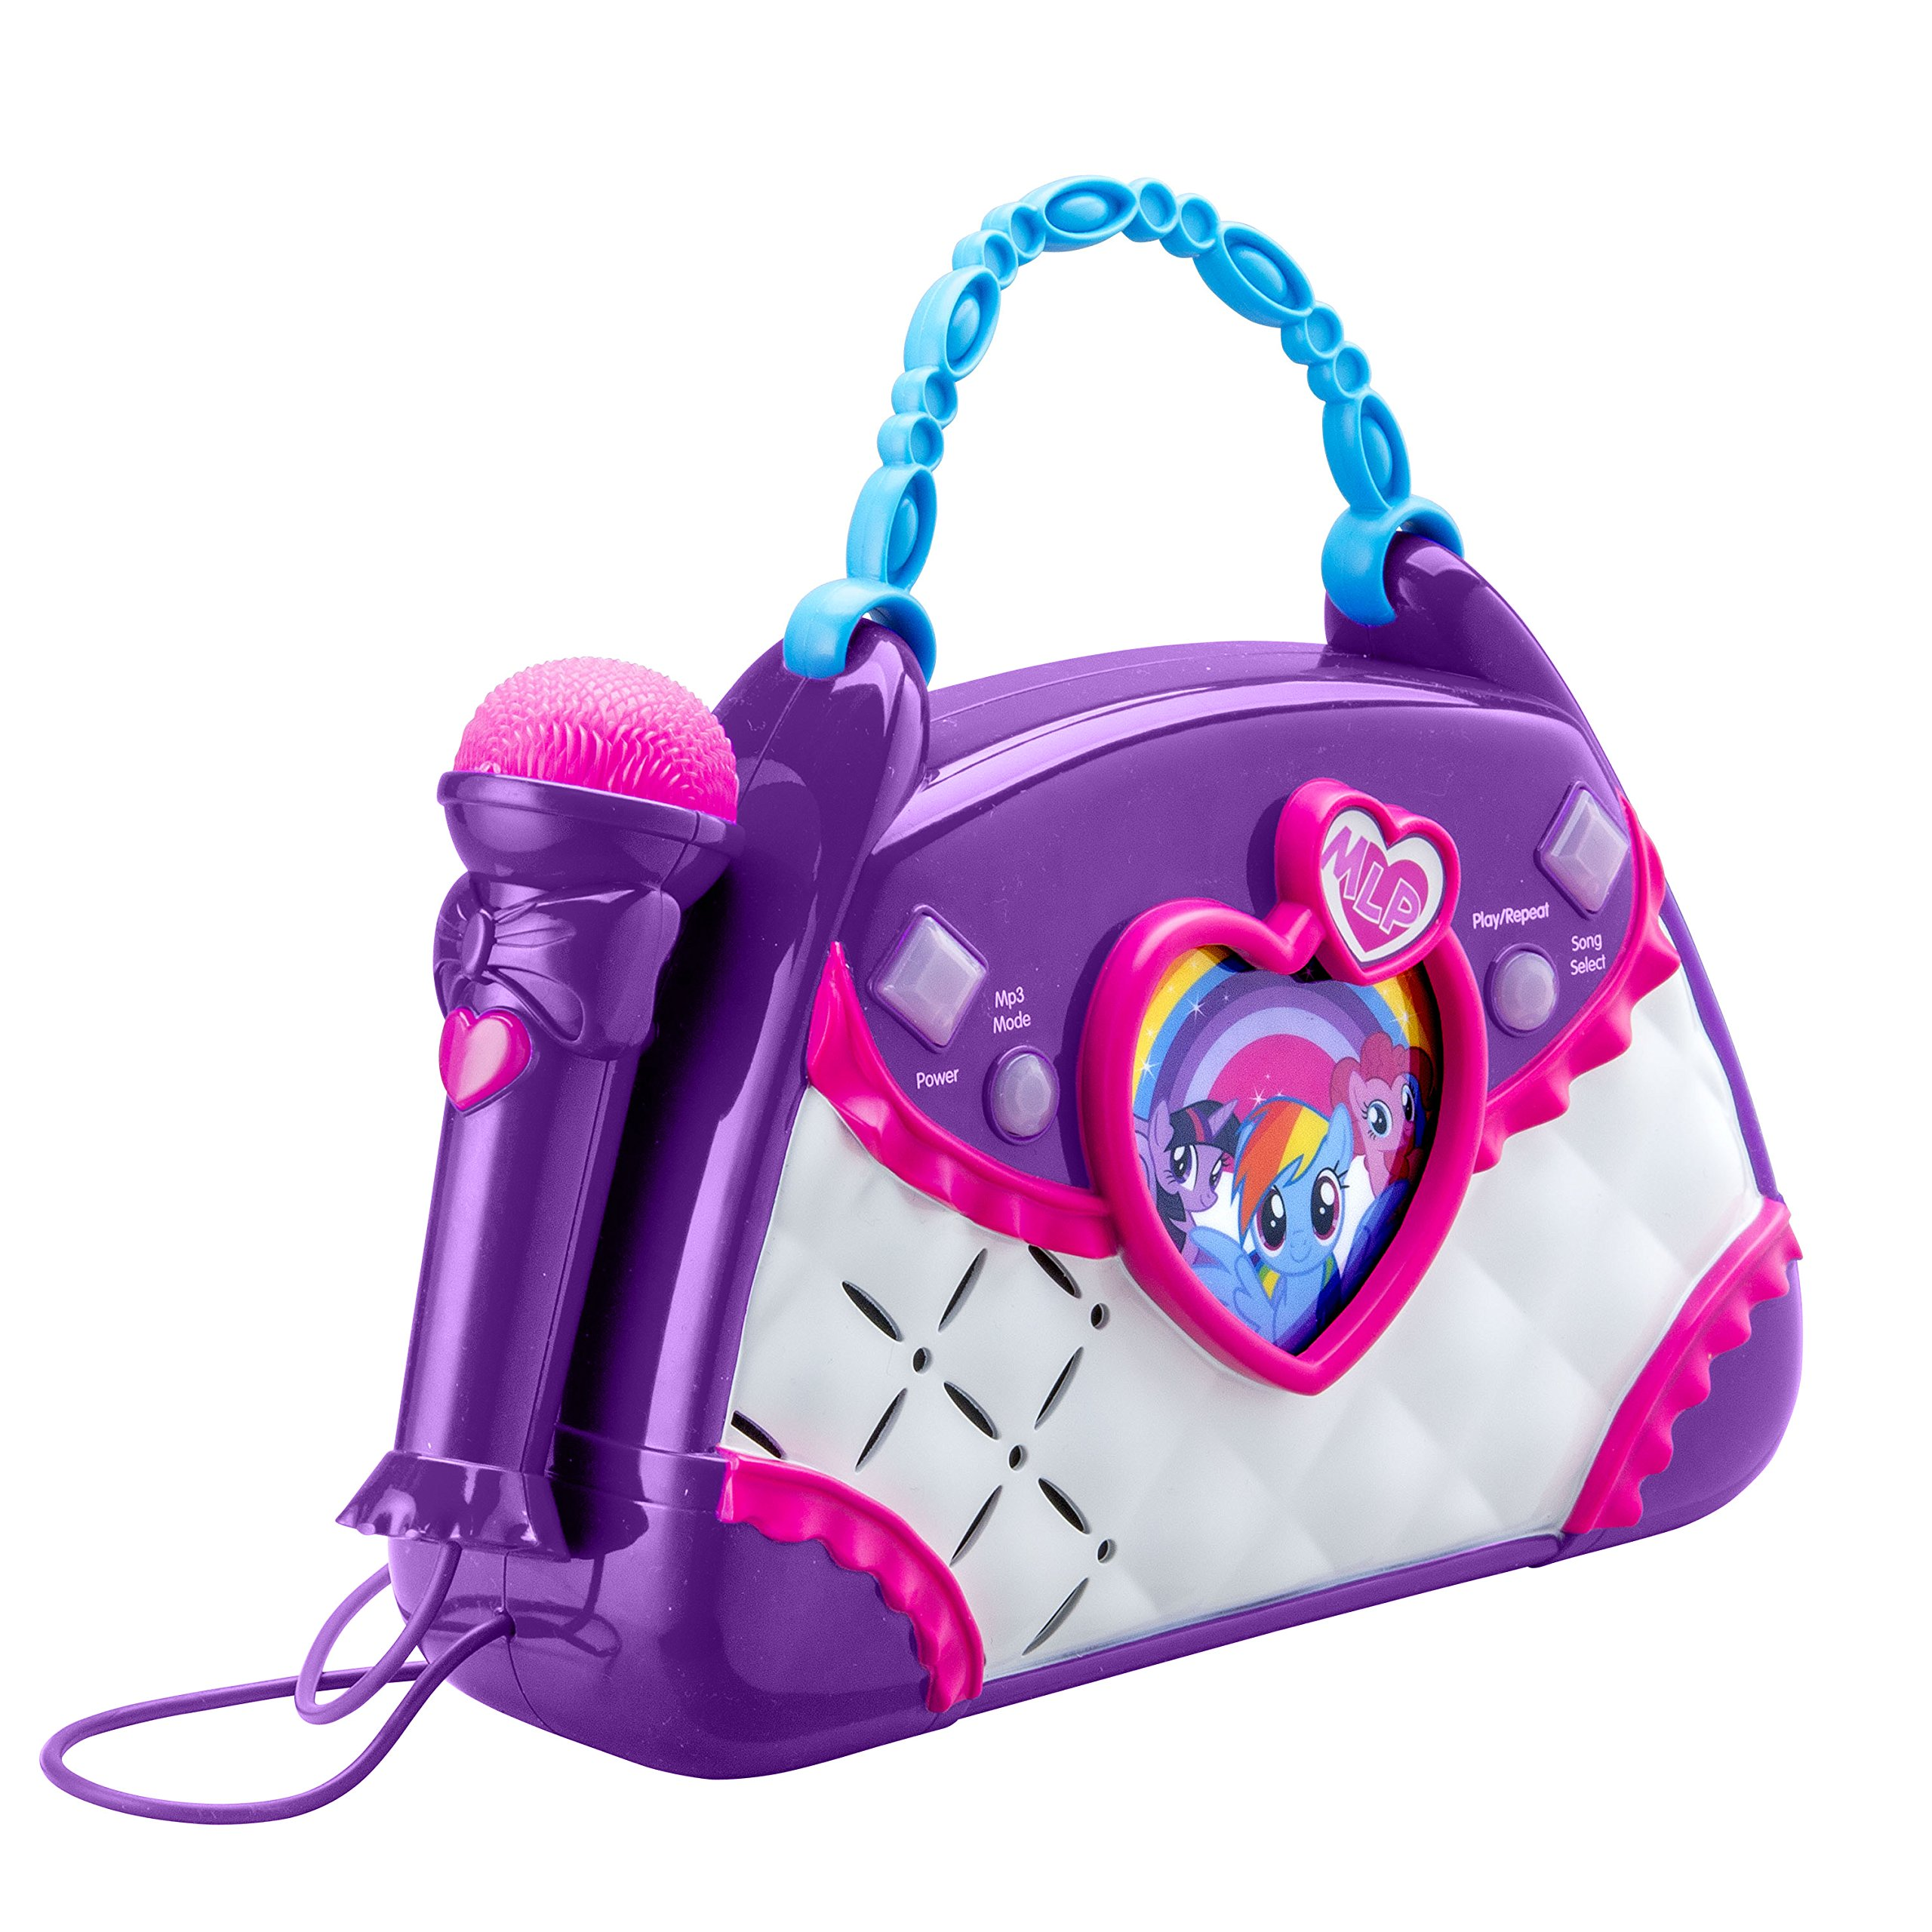 My Little Pony Sing Along Boombox with Real Working Mic Built in Music and Can connect to MP3 Player by eKids